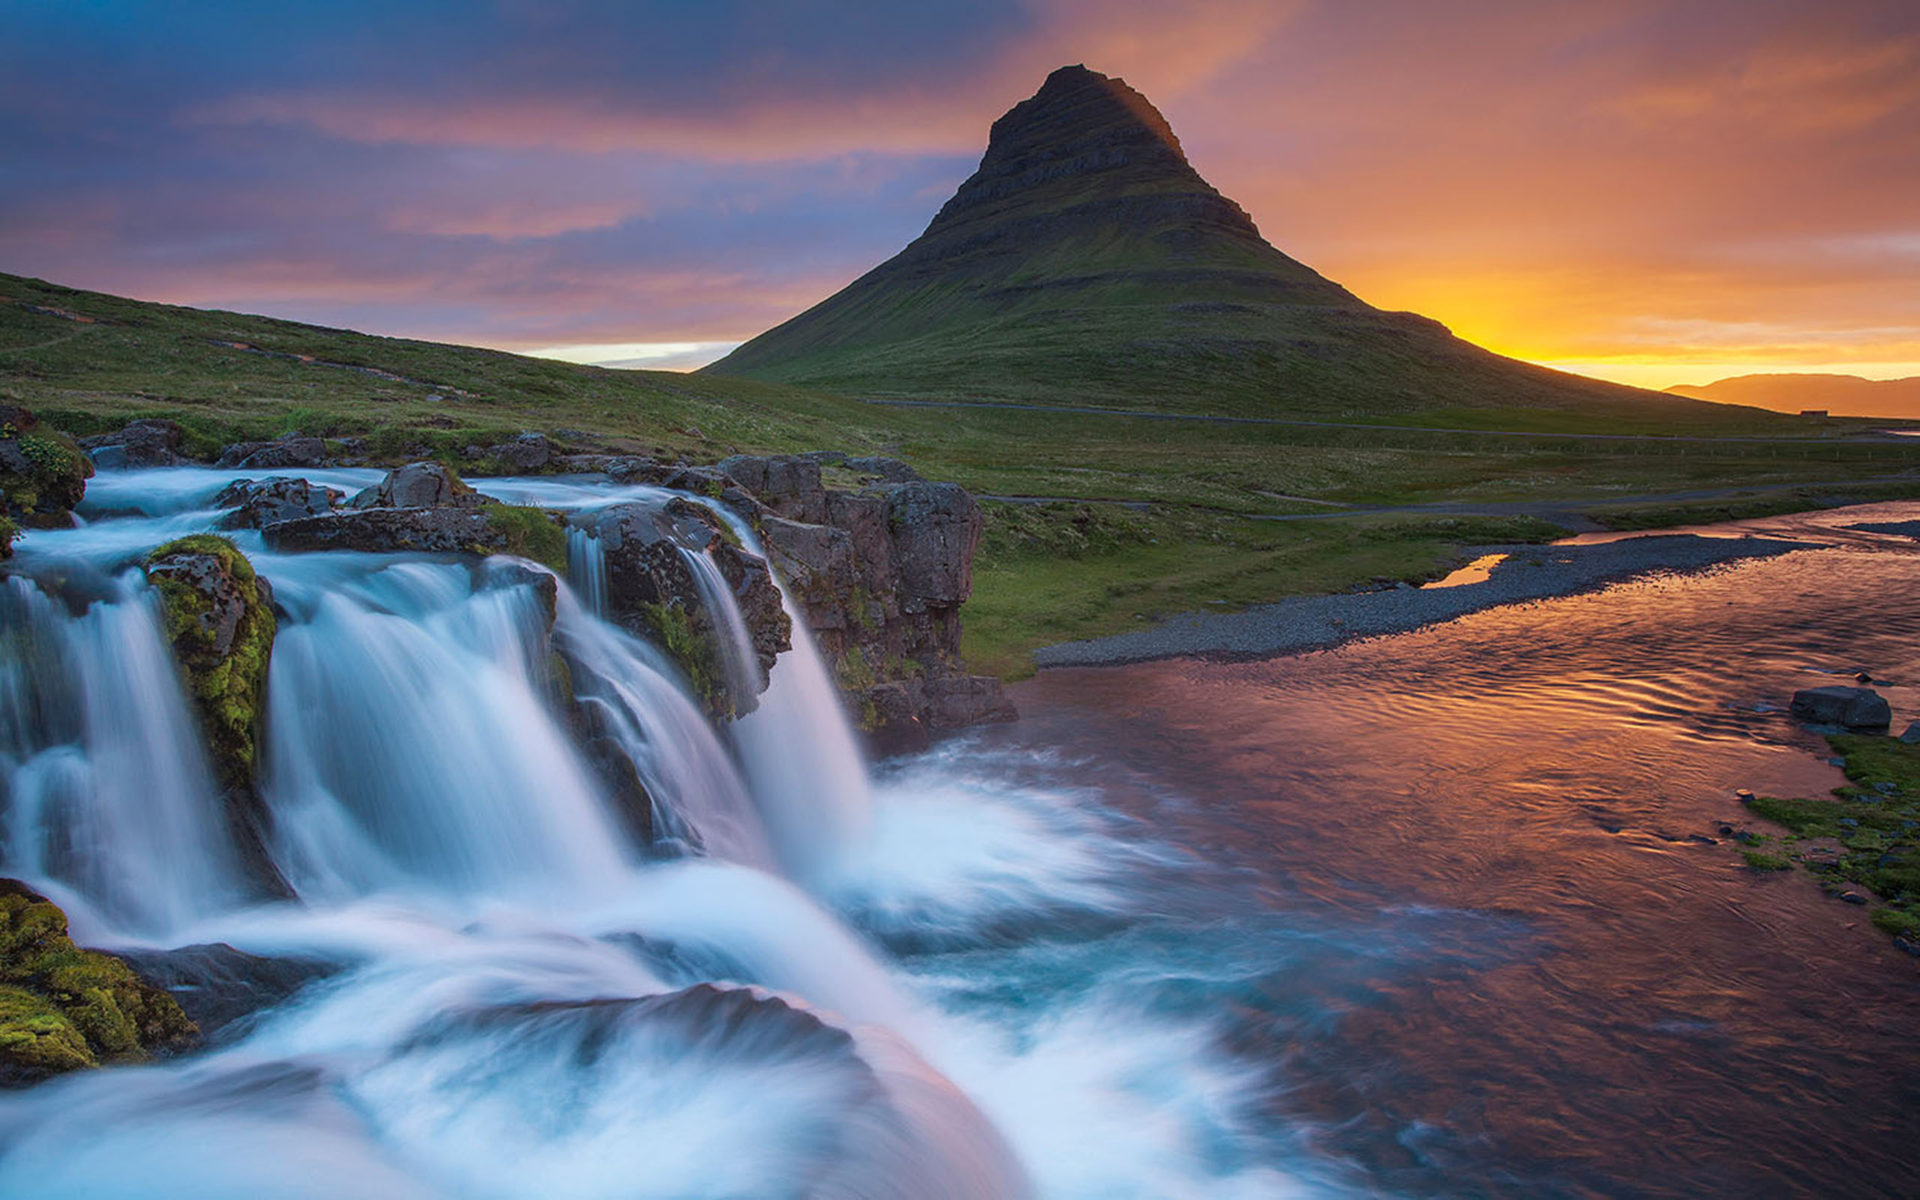 Falls Hd Wallpaper Free Download Wallpaper Hd Kirkjufell Iceland Waterfall River Mountain